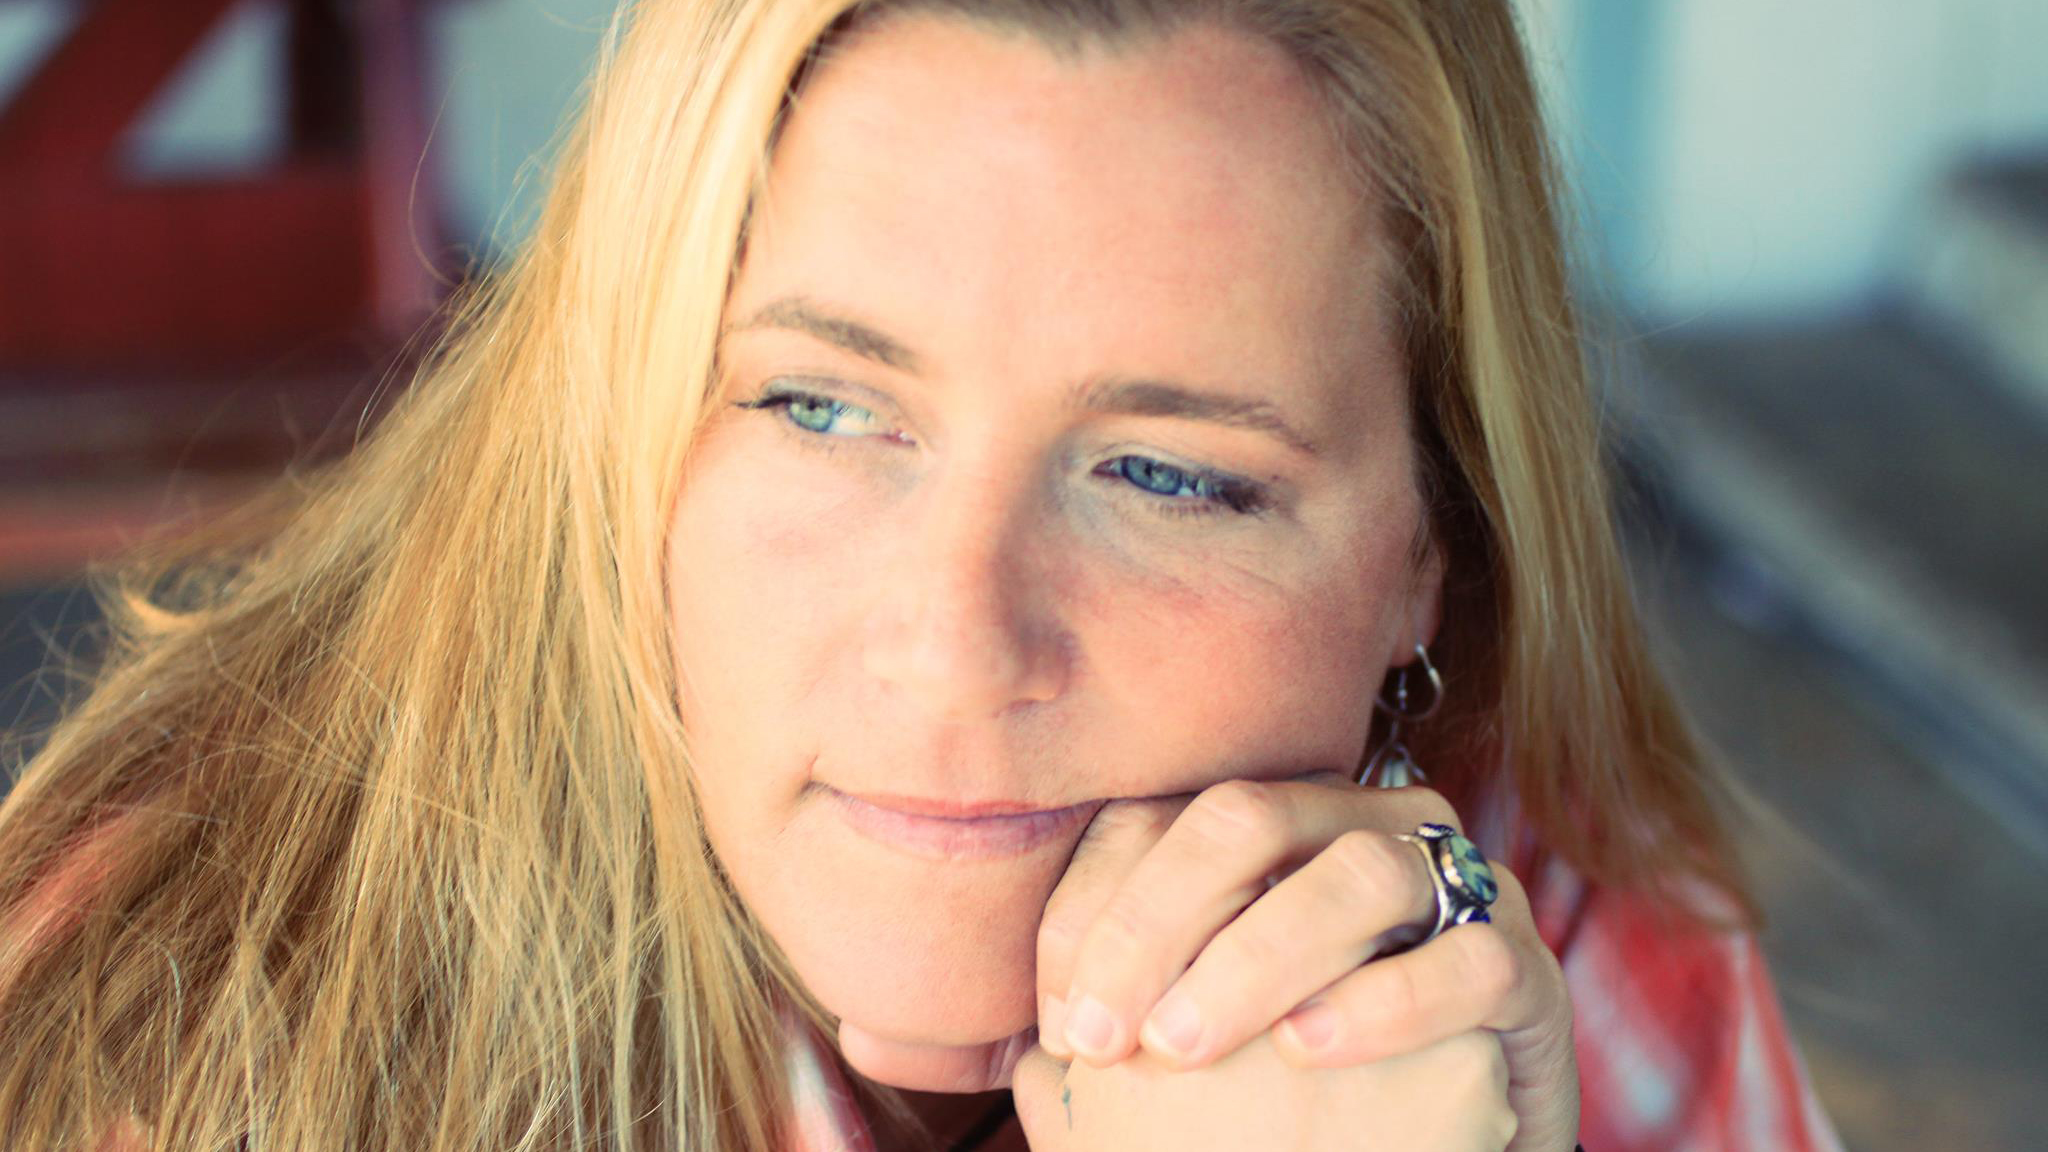 Susan Gibson to serve up intimate show at Fire Slice